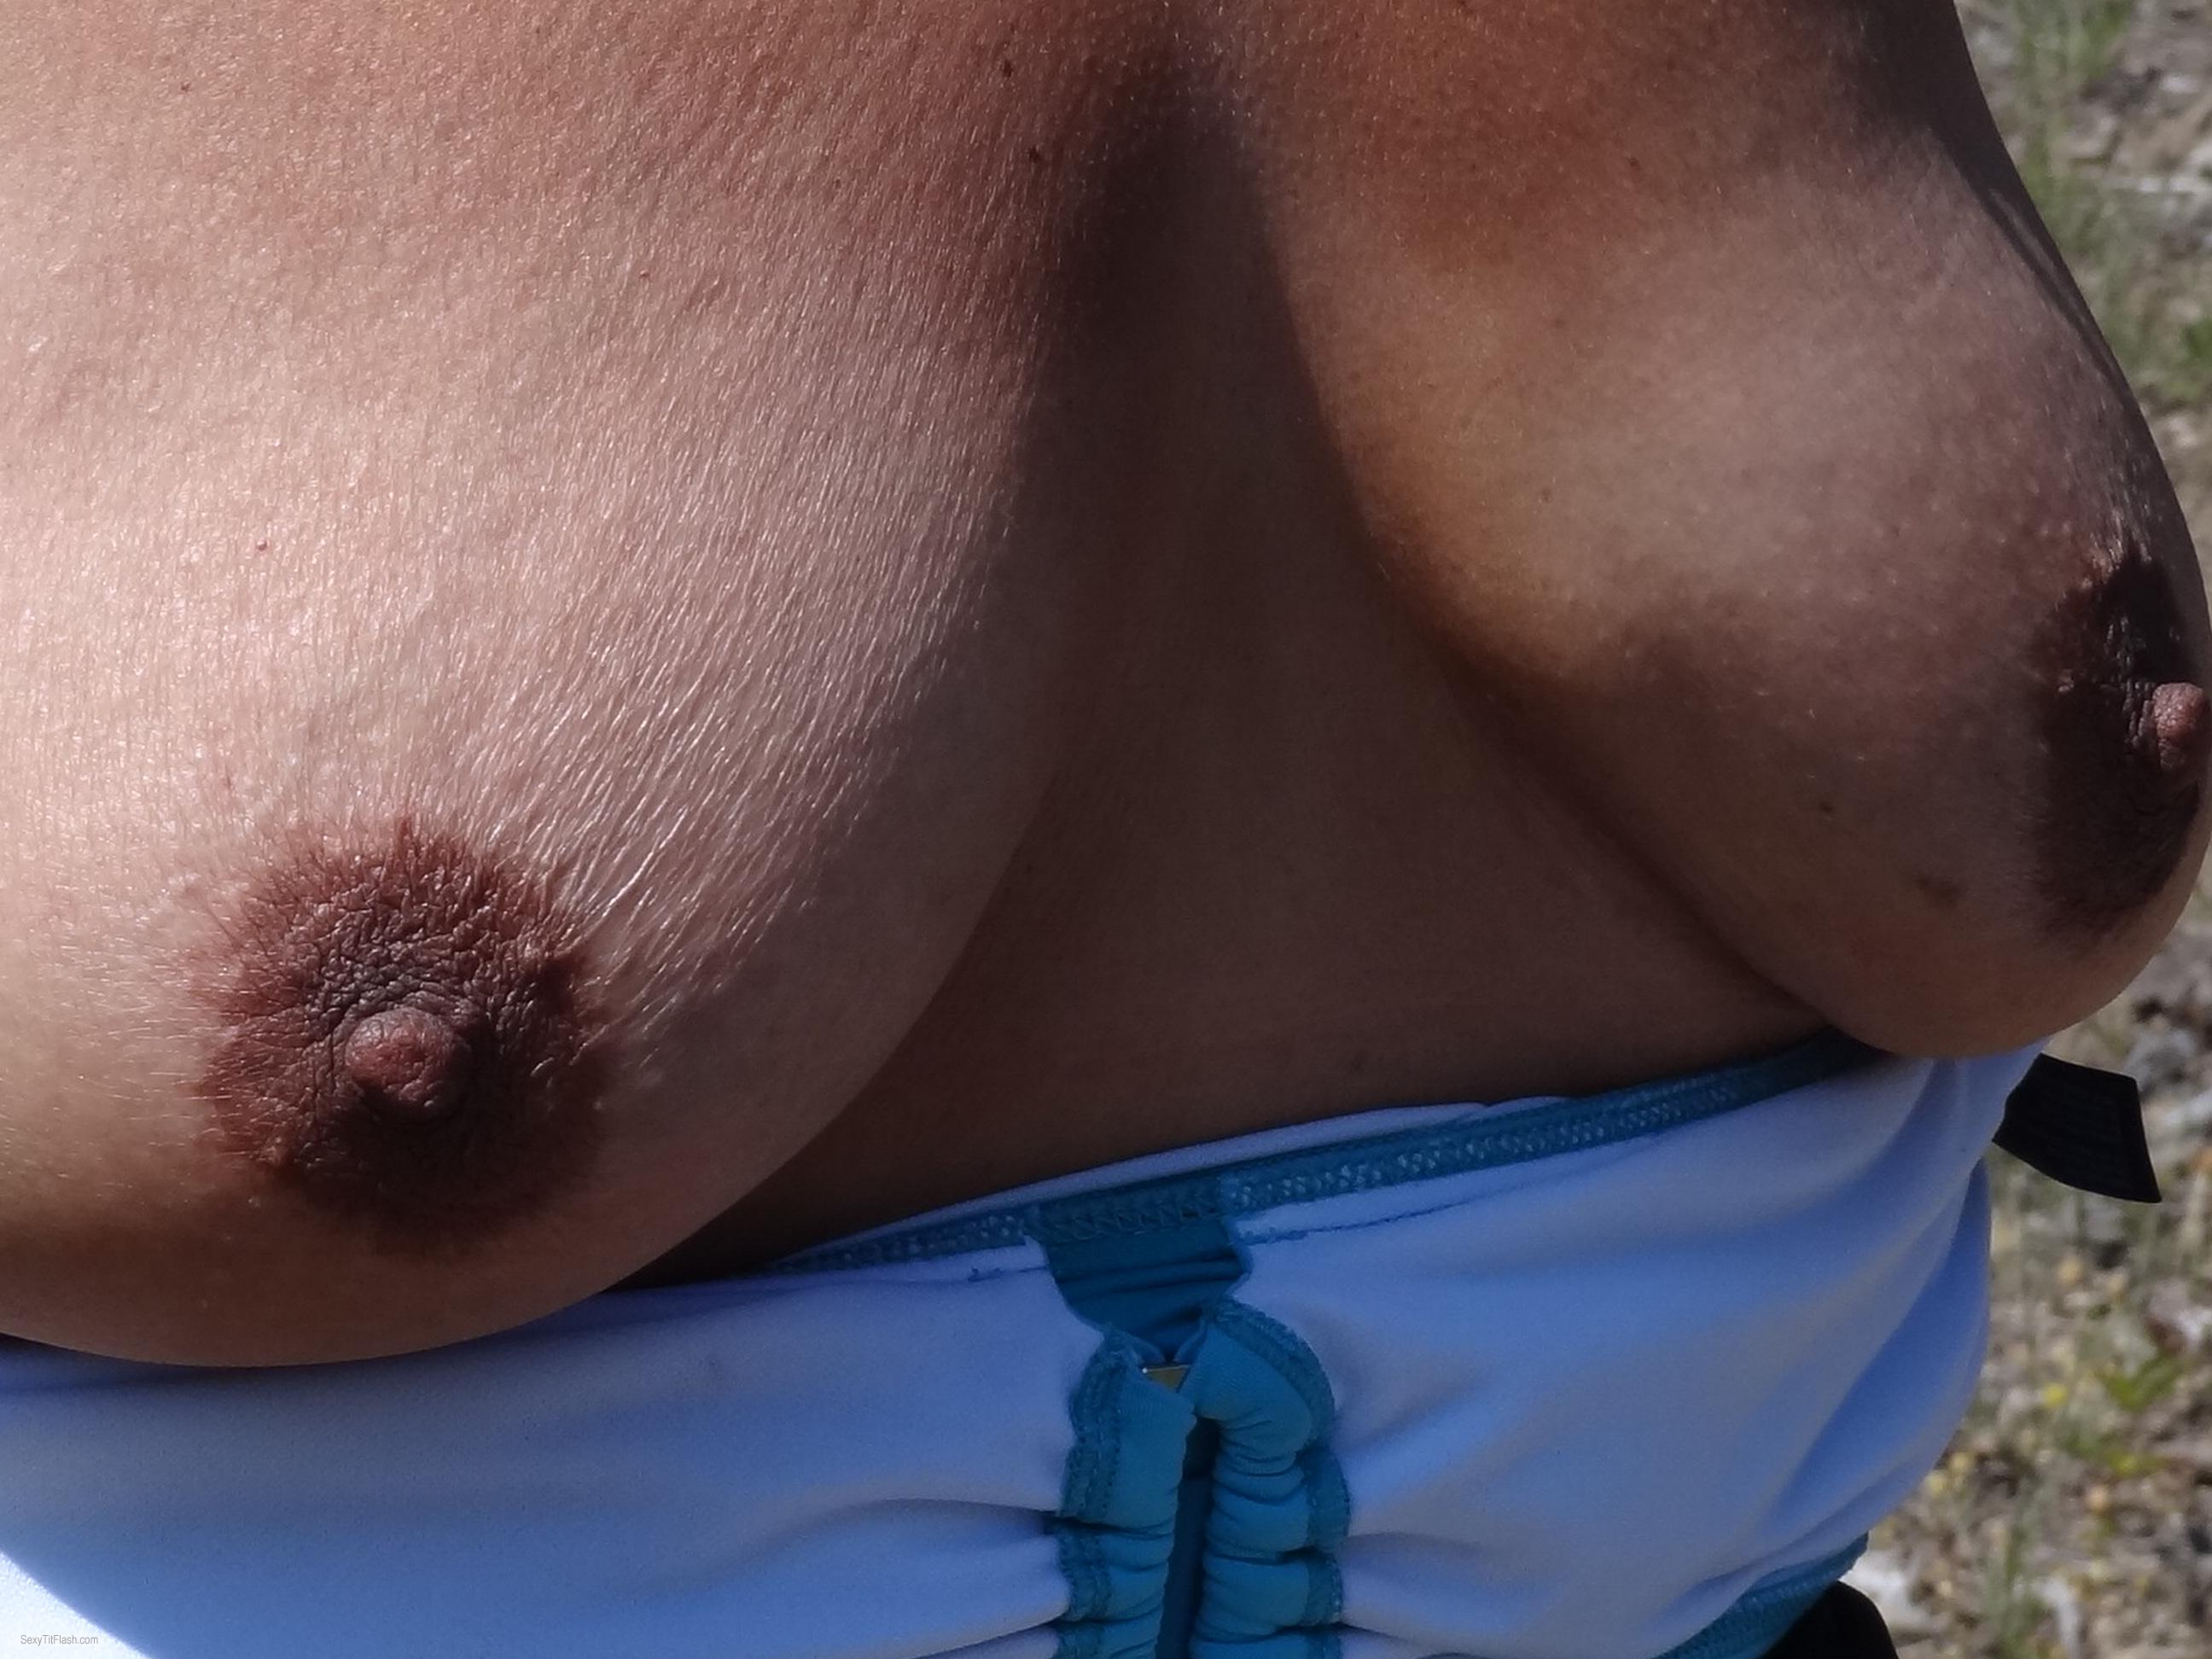 Tit Flash: Wife's Tanlined Medium Tits - Karentits from United States